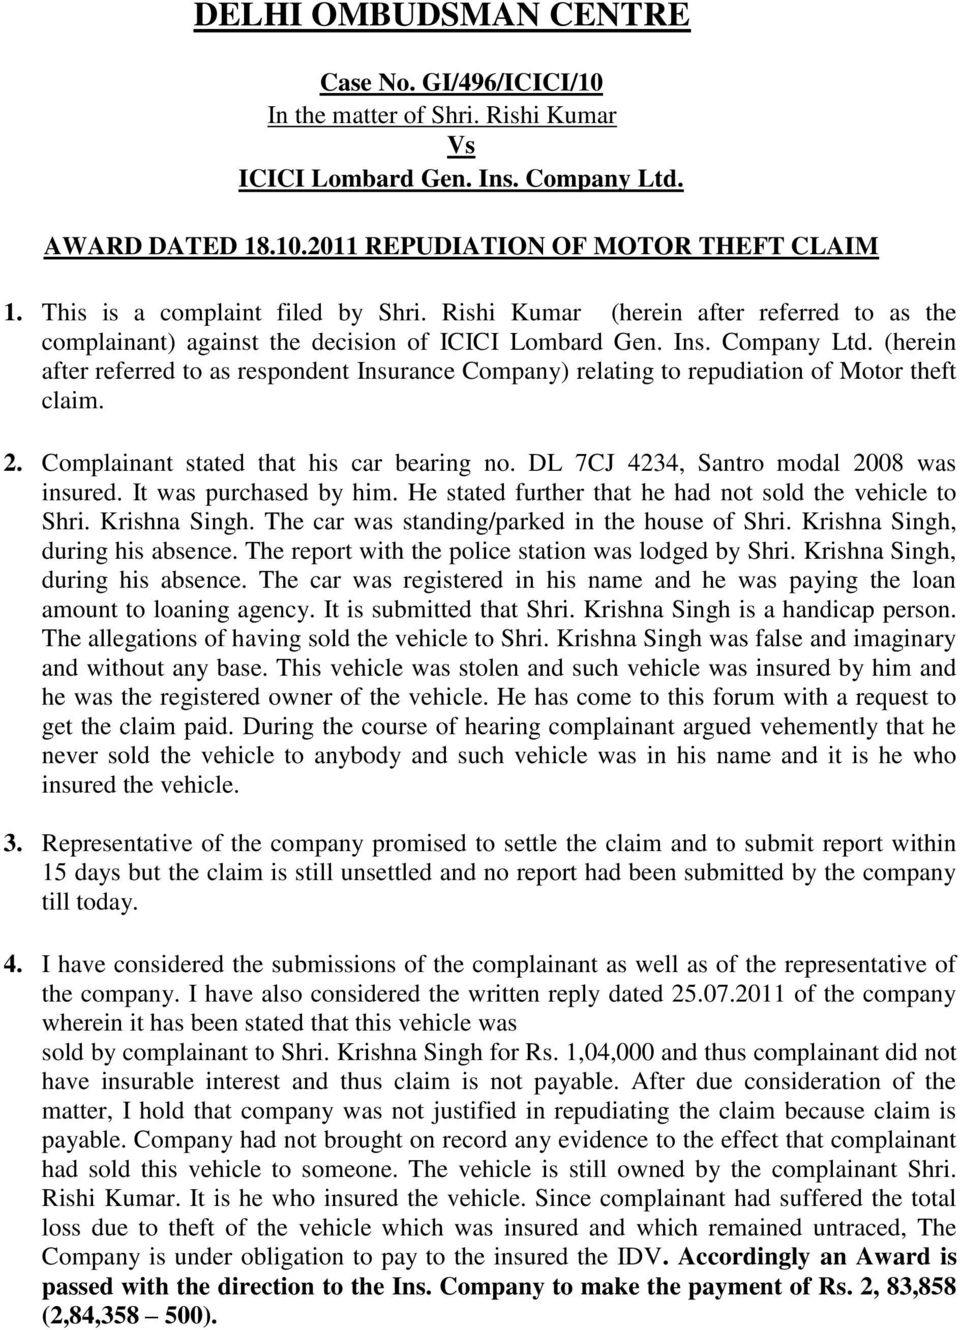 (herein after referred to as respondent Insurance Company) relating to repudiation of Motor theft claim. 2. Complainant stated that his car bearing no. DL 7CJ 4234, Santro modal 2008 was insured.